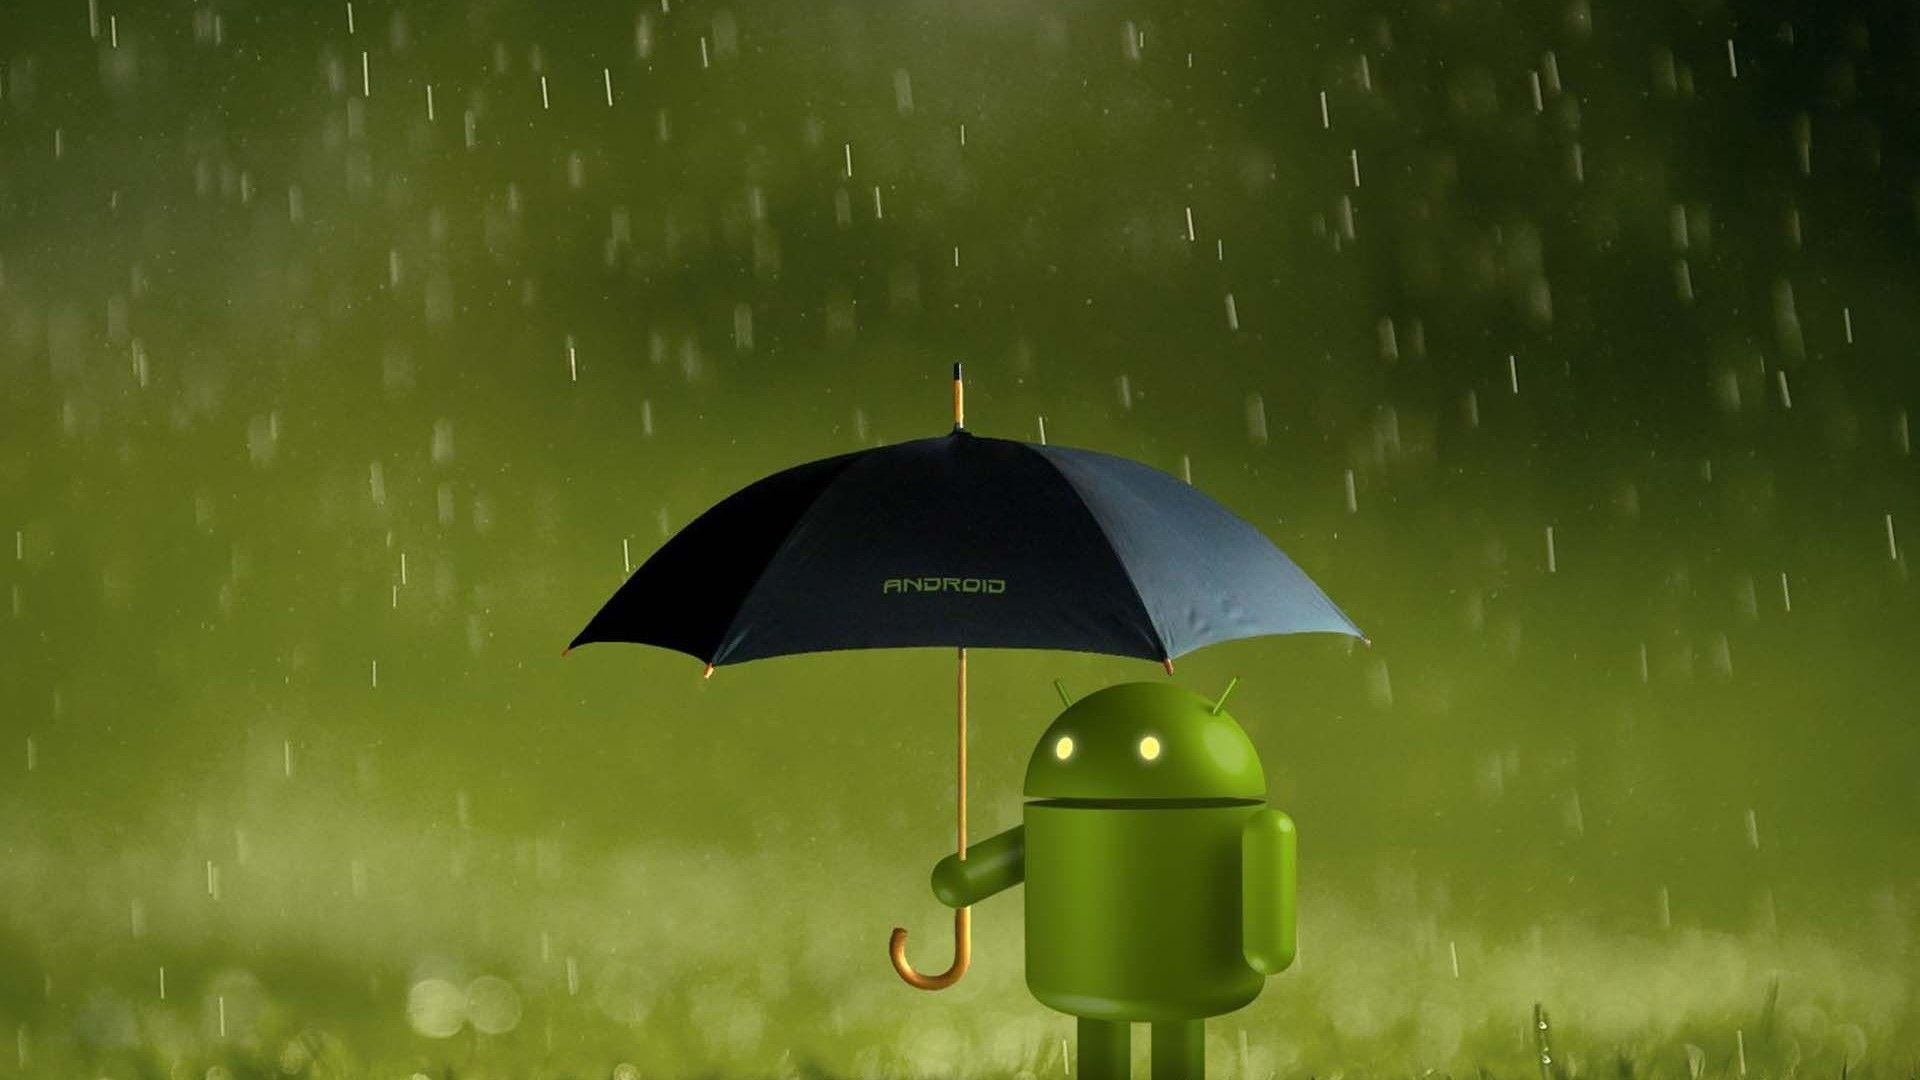 Rainy Android Wallpapers Wallpapers